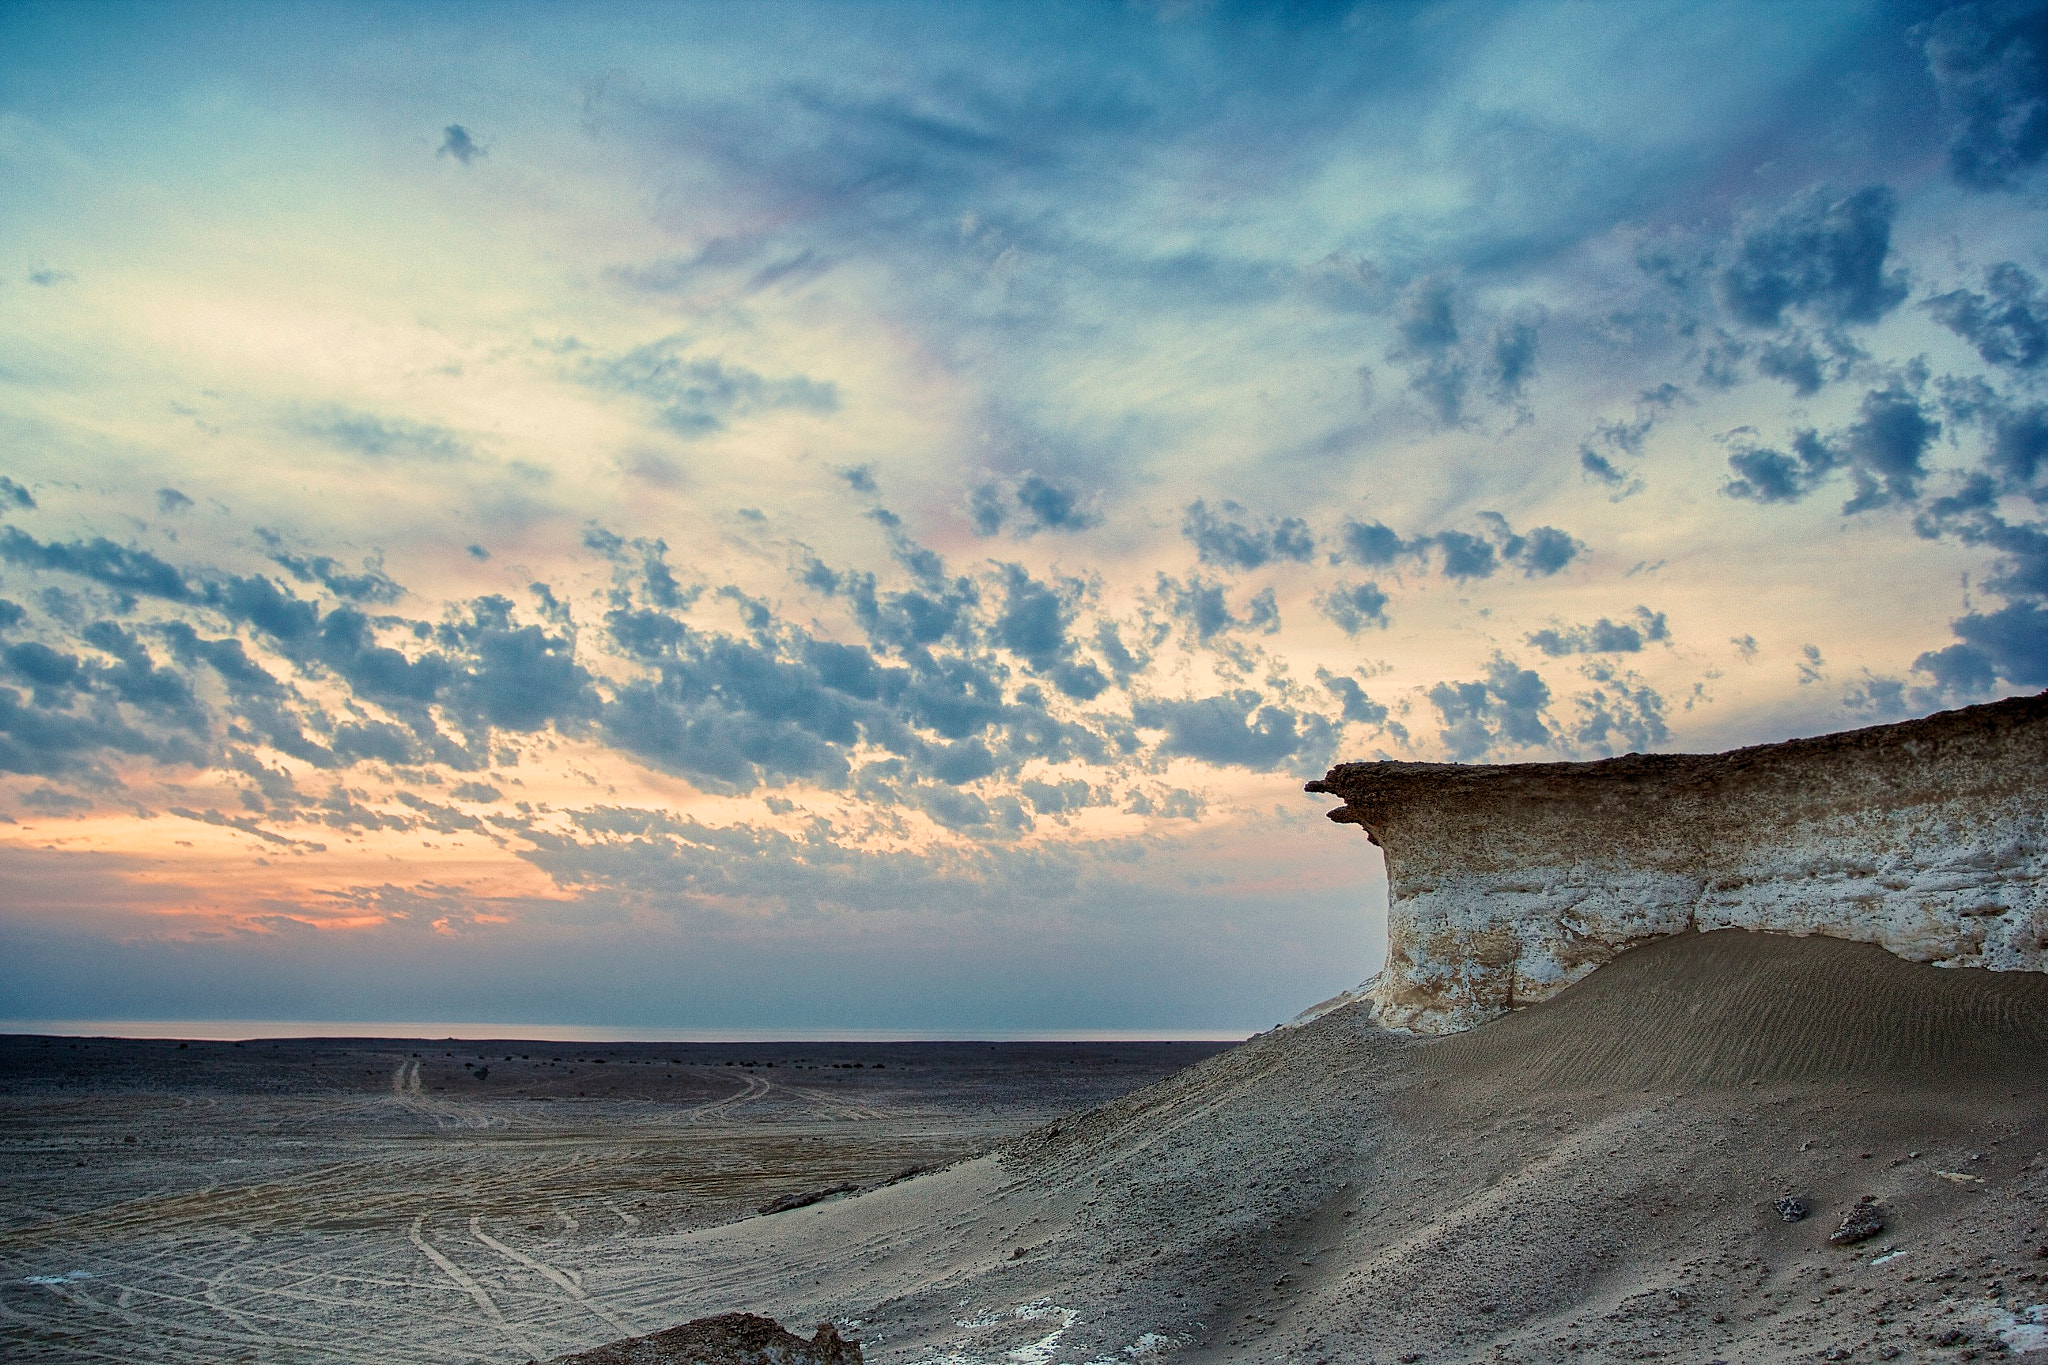 Photograph Zekreet by Jethro Stamps on 500px